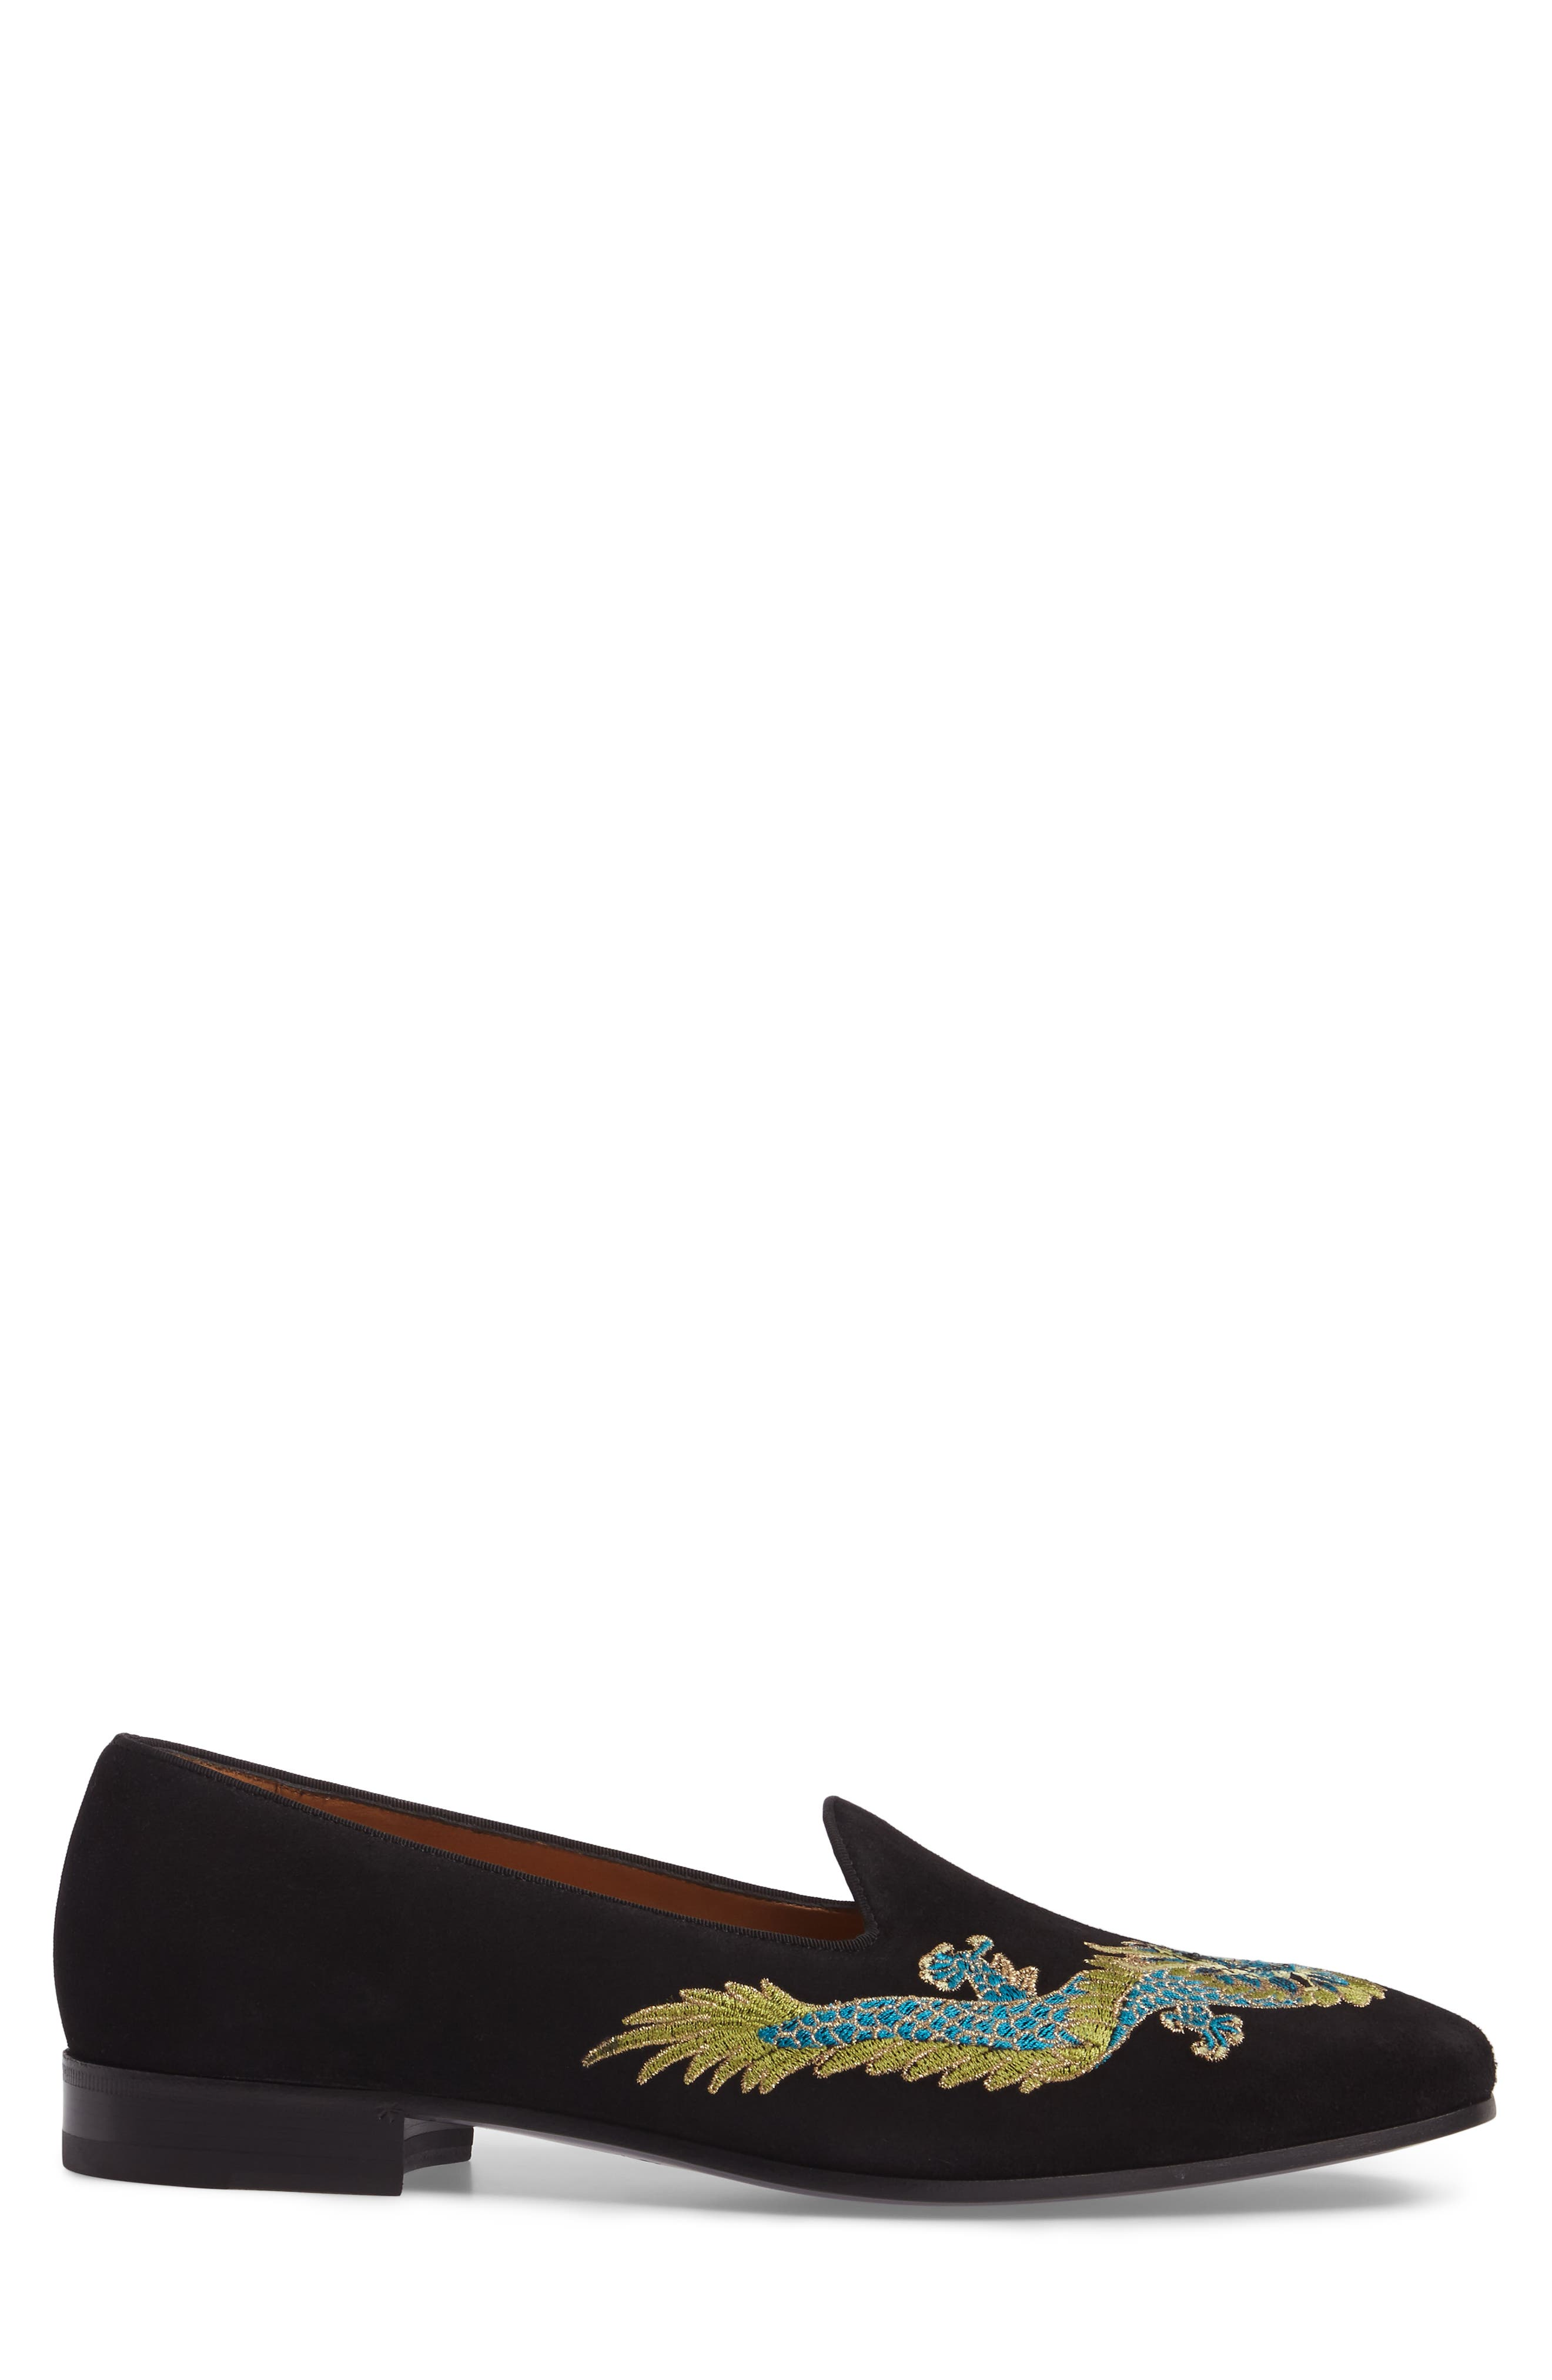 New Gallipoli Dragon Loafer,                             Alternate thumbnail 3, color,                             Black Suede